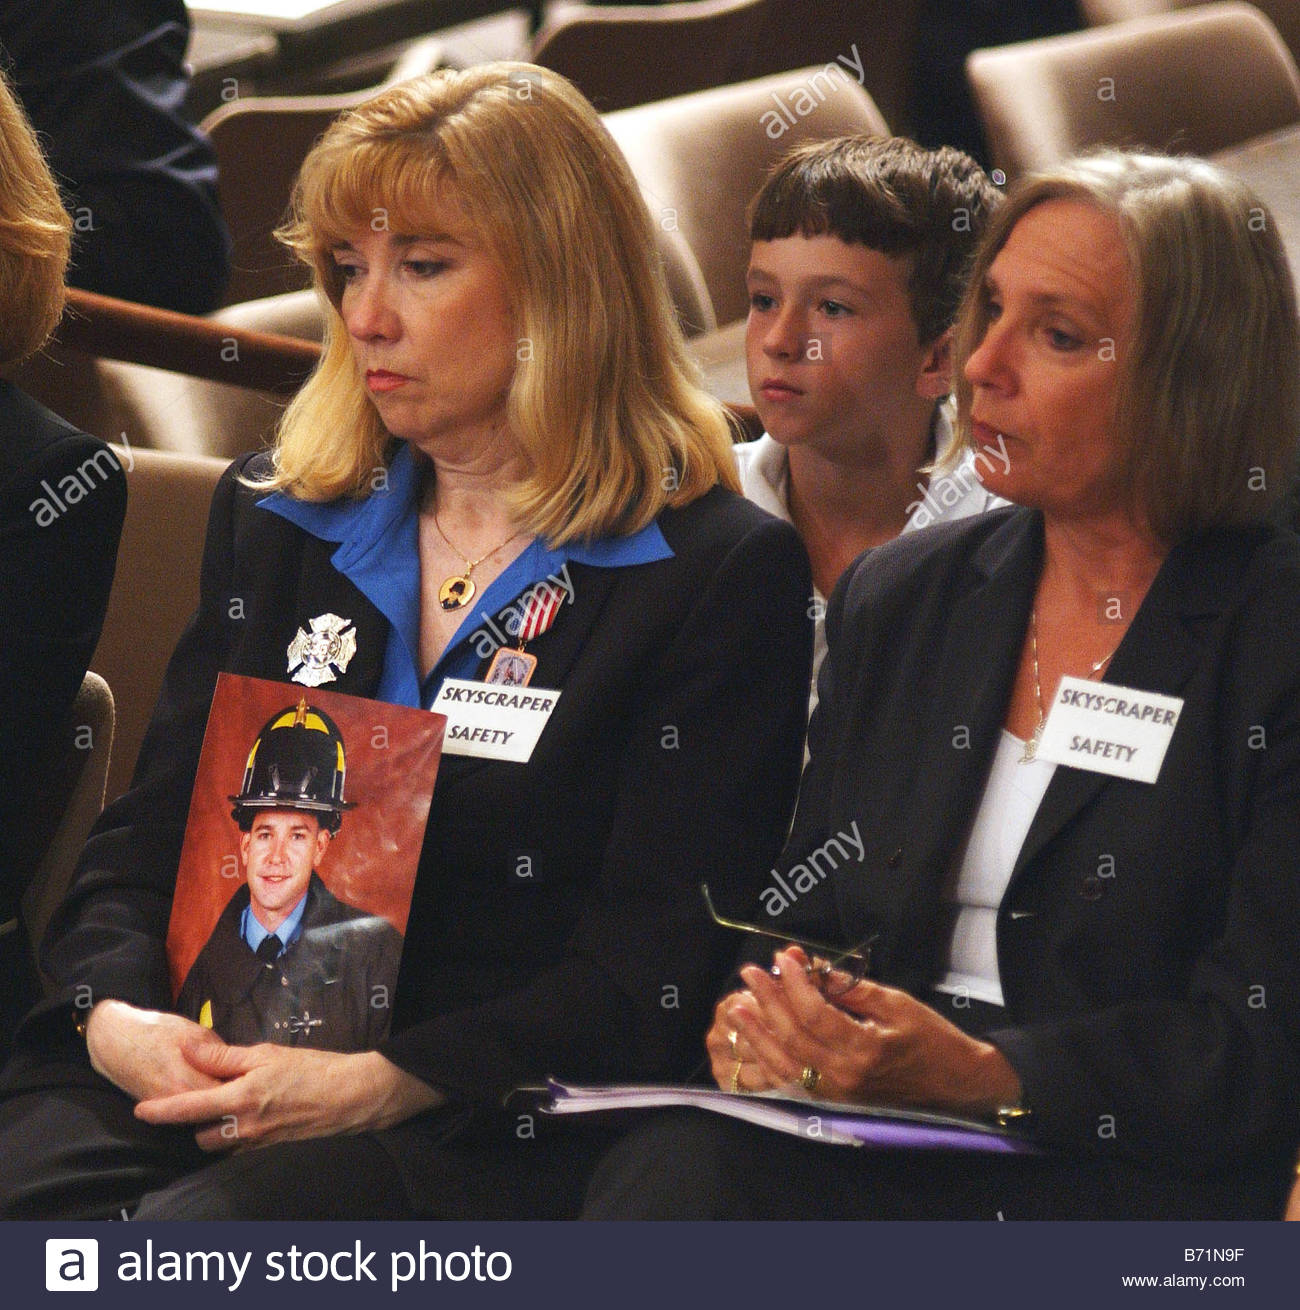 9 18 02 INVESTIGATION OF SEPT 11 INTELLIGENCE FAILURES Sally Regenhard founder and chair of the Skyscraper Safety - Stock Image